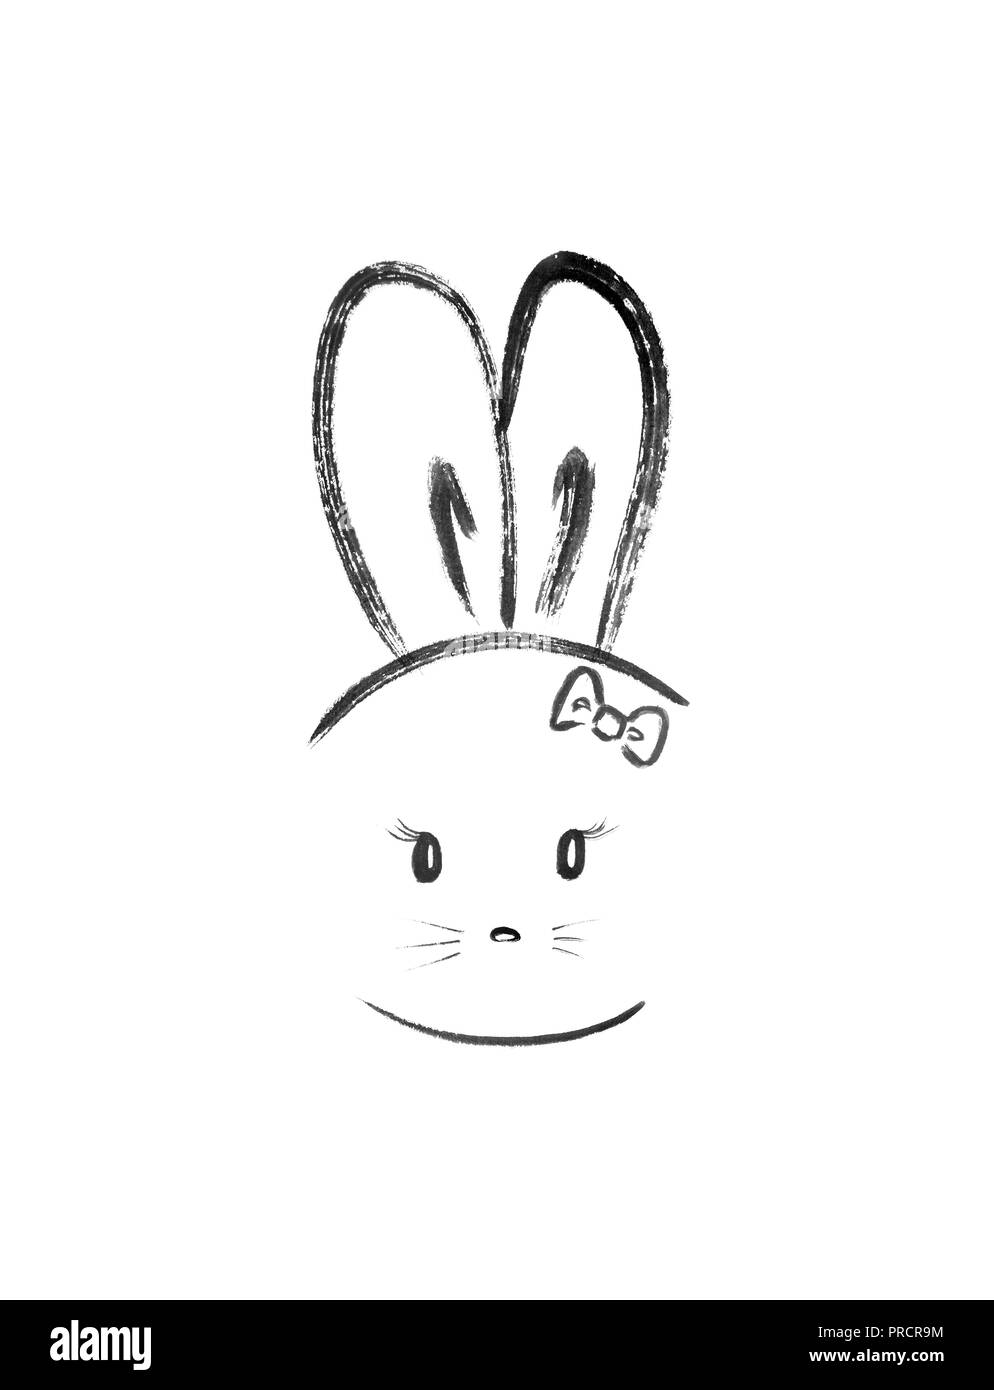 Cute bunny girl with long ears wearing a bow. Minimalistic kawaii style illustration, Japanese Zen Sumi-e artwork isolated on white background. - Stock Image